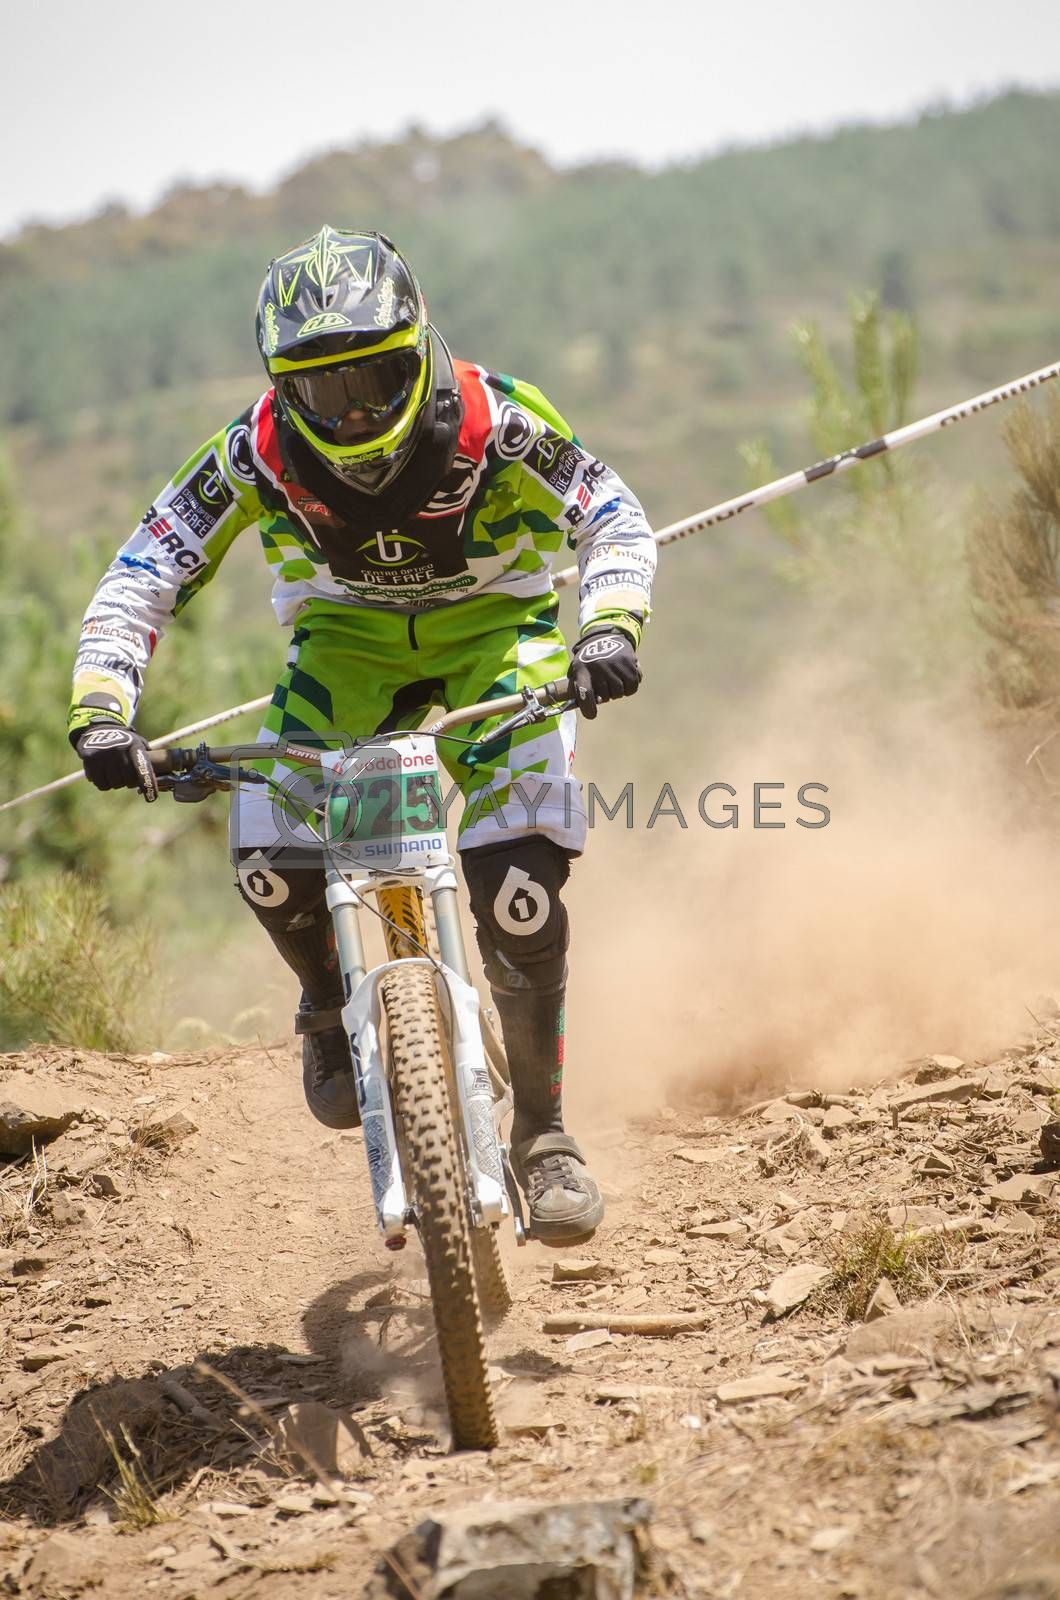 GOIS, PORTUGAL - JUNE 23: Diogo Pinto during the 4th Stage of the Taca de Portugal Downhill Vodafone on june 23, 2013 in Gois, Portugal.